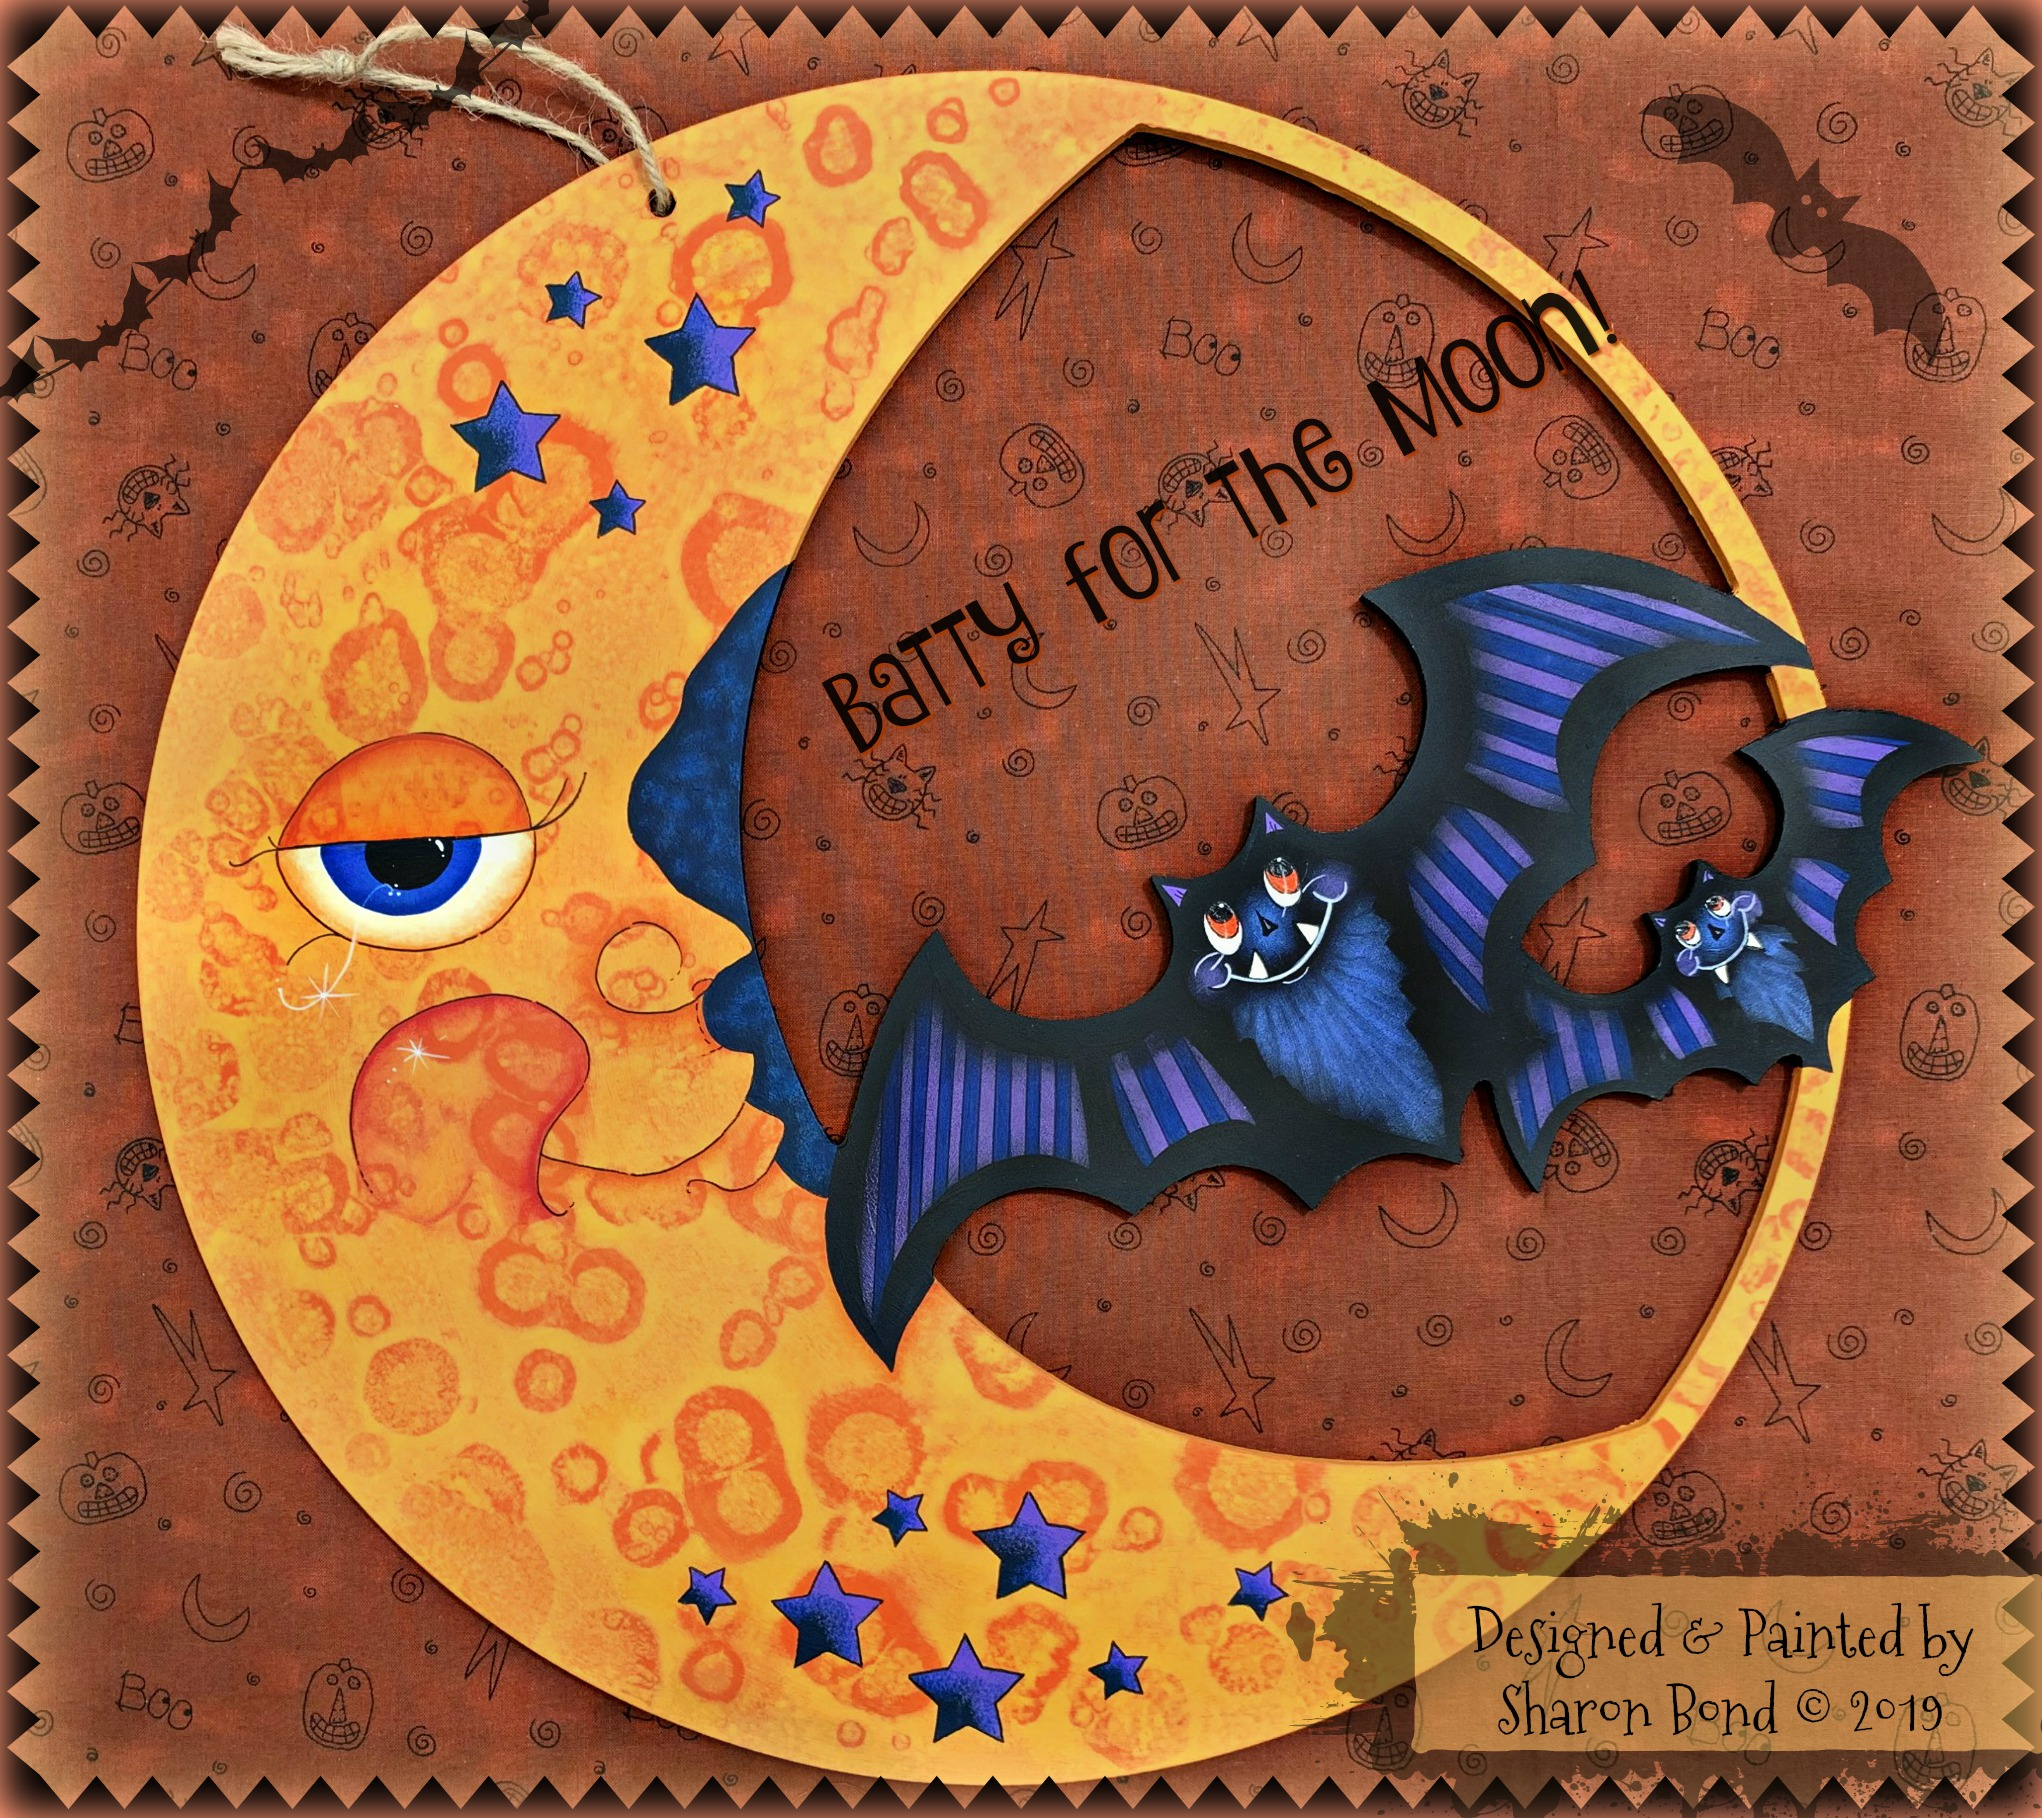 Batty For The Moon! - E-Packet - Sharon Bond